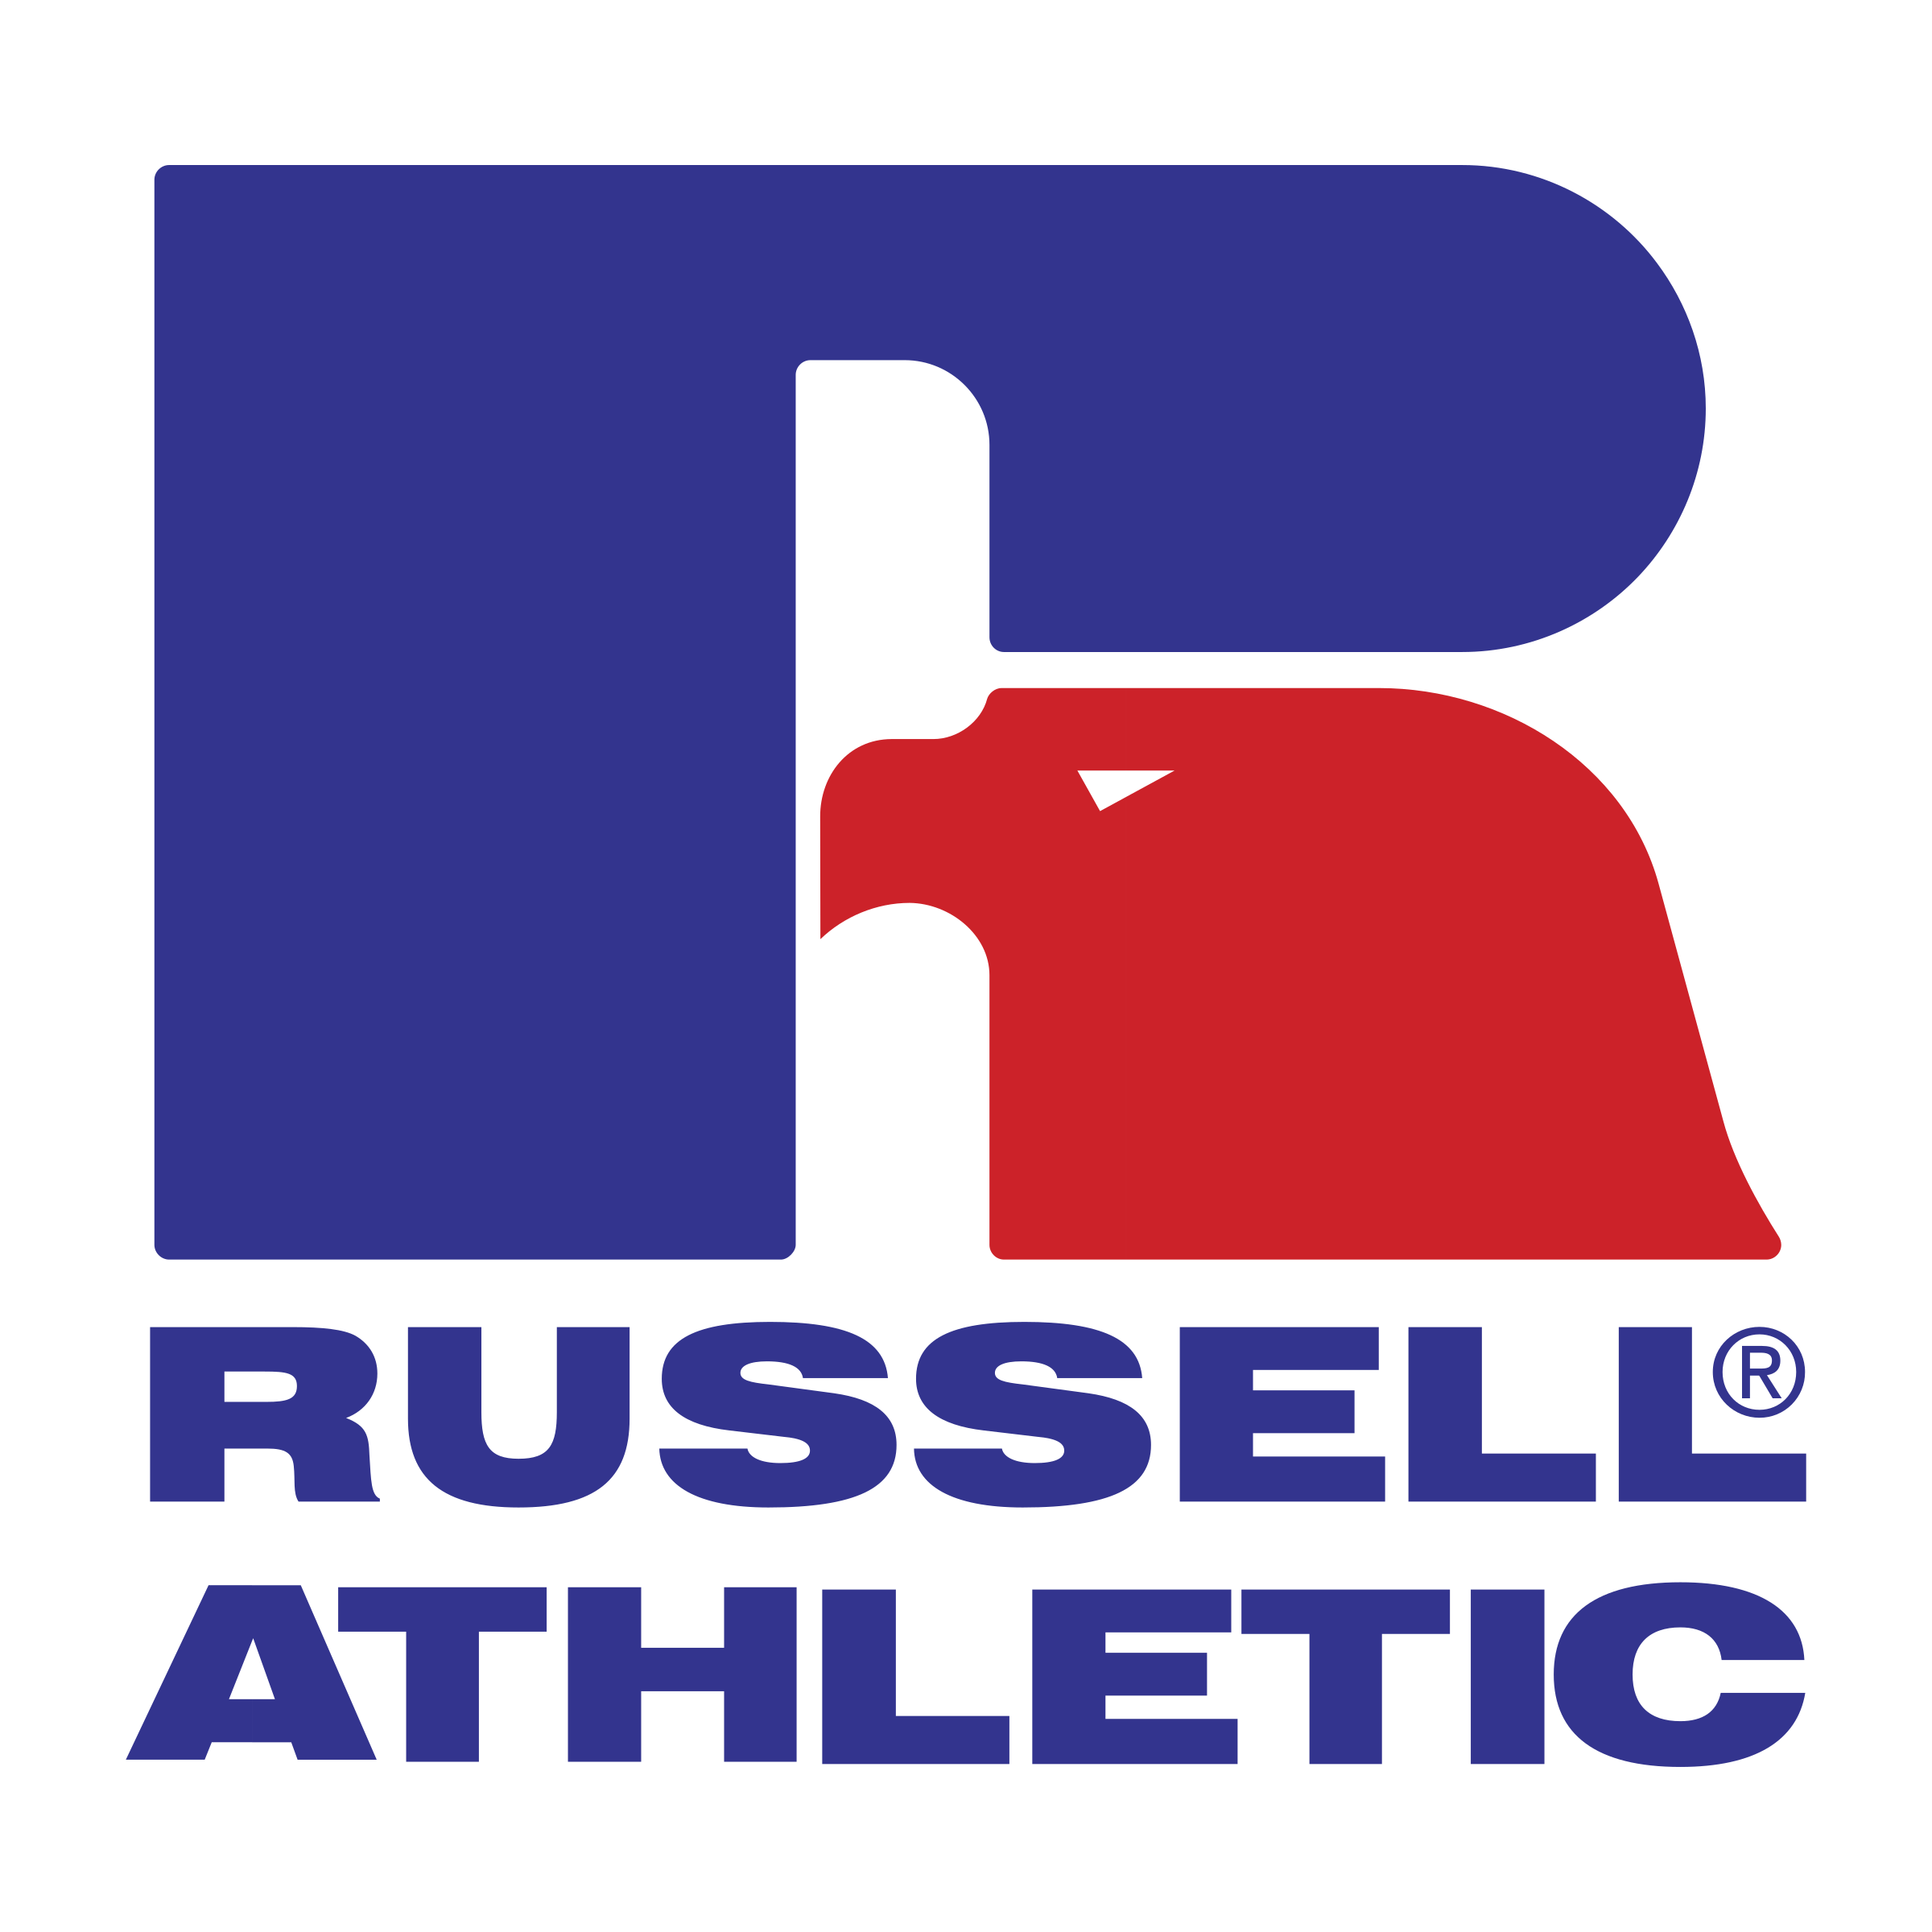 russell-athletic.png